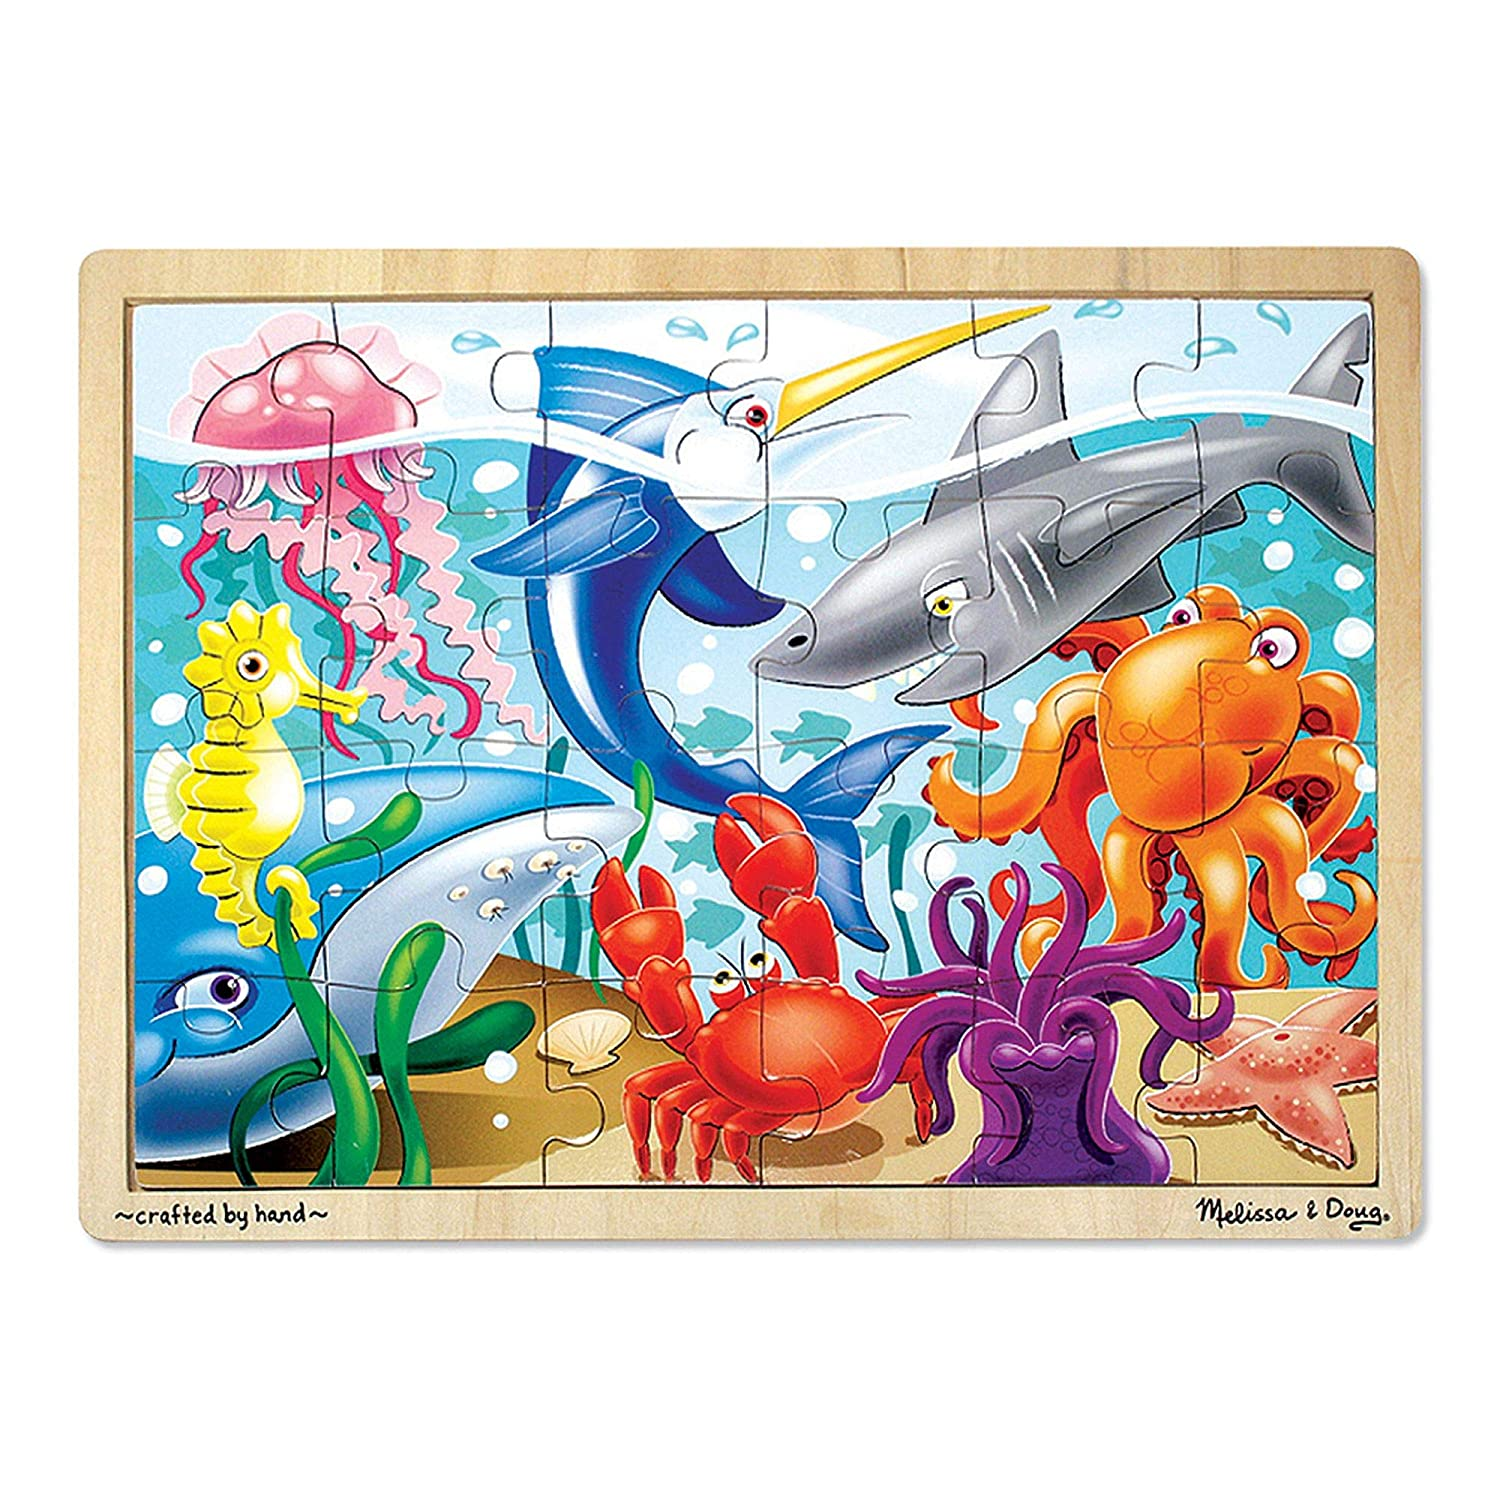 B000GL1DI6 Melissa & Doug Under the Sea Wooden Jigsaw Puzzle (Preschool, Sturdy Wooden Construction, 24 Pieces, Great Gift for Girls and Boys - Best for 3, 4, and 5 Year Olds) 81LEi2WtHuL